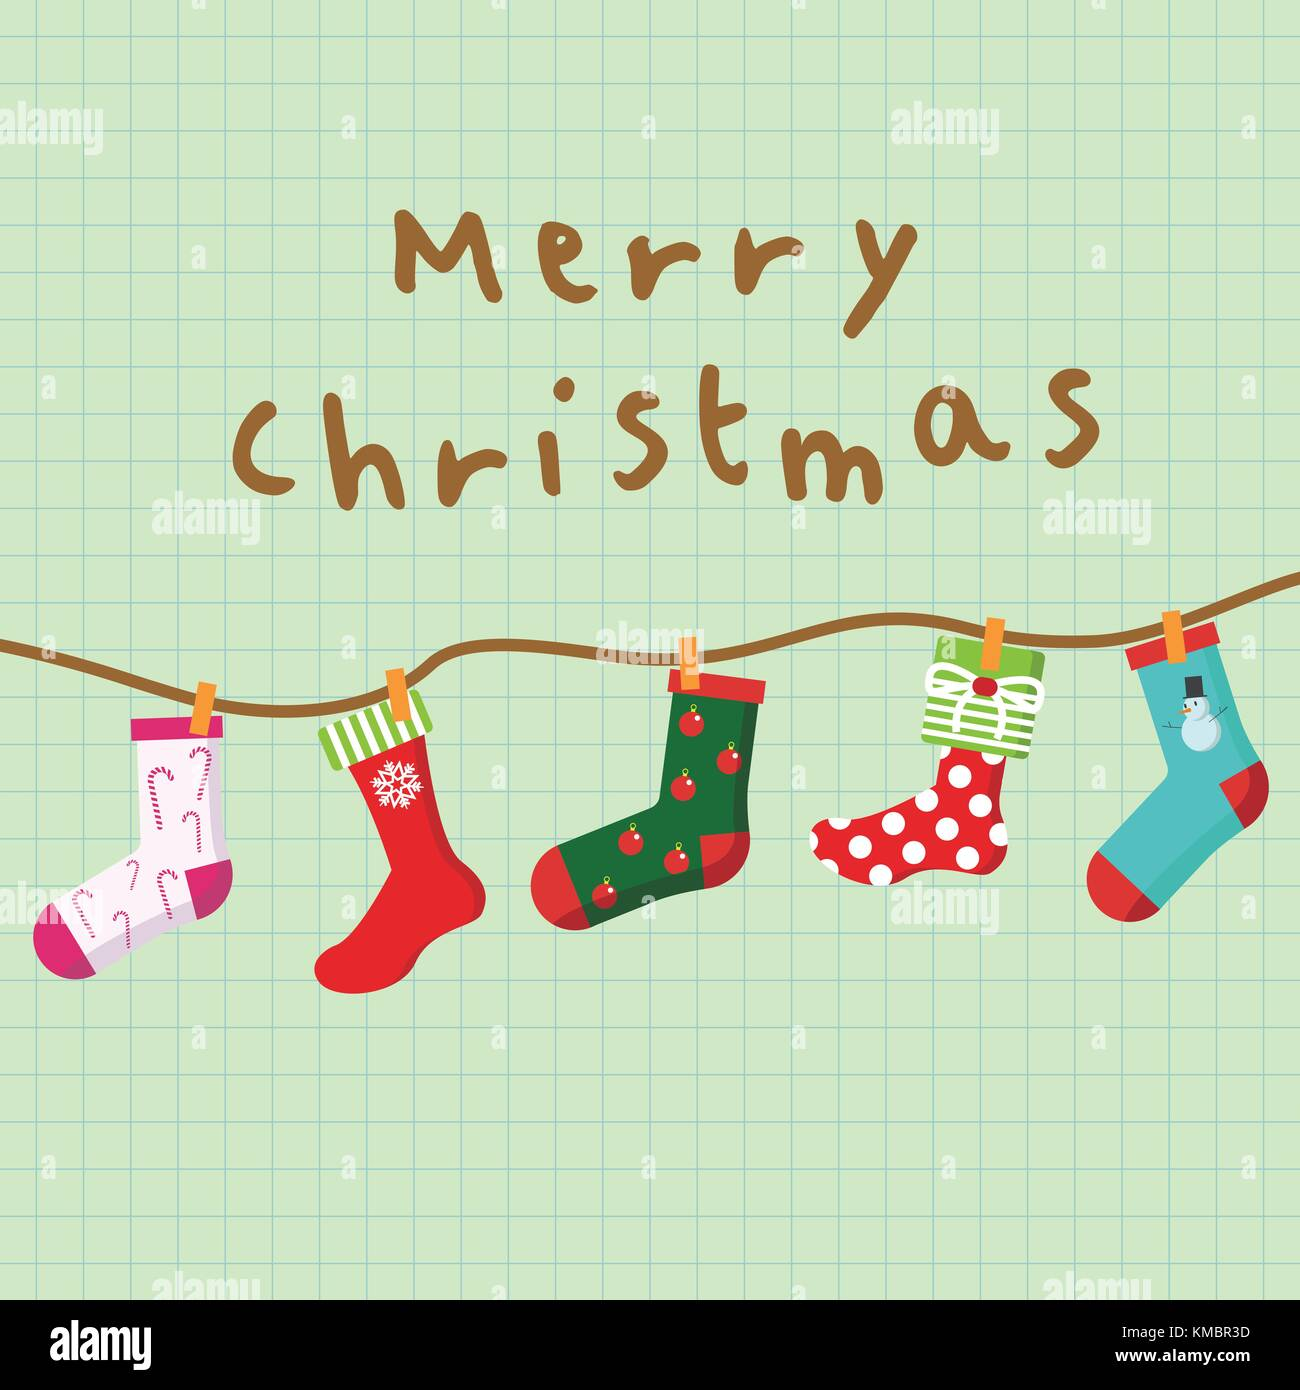 Merry Christmas Hanging Socks Card Background Vector Graphic Illustration  Design